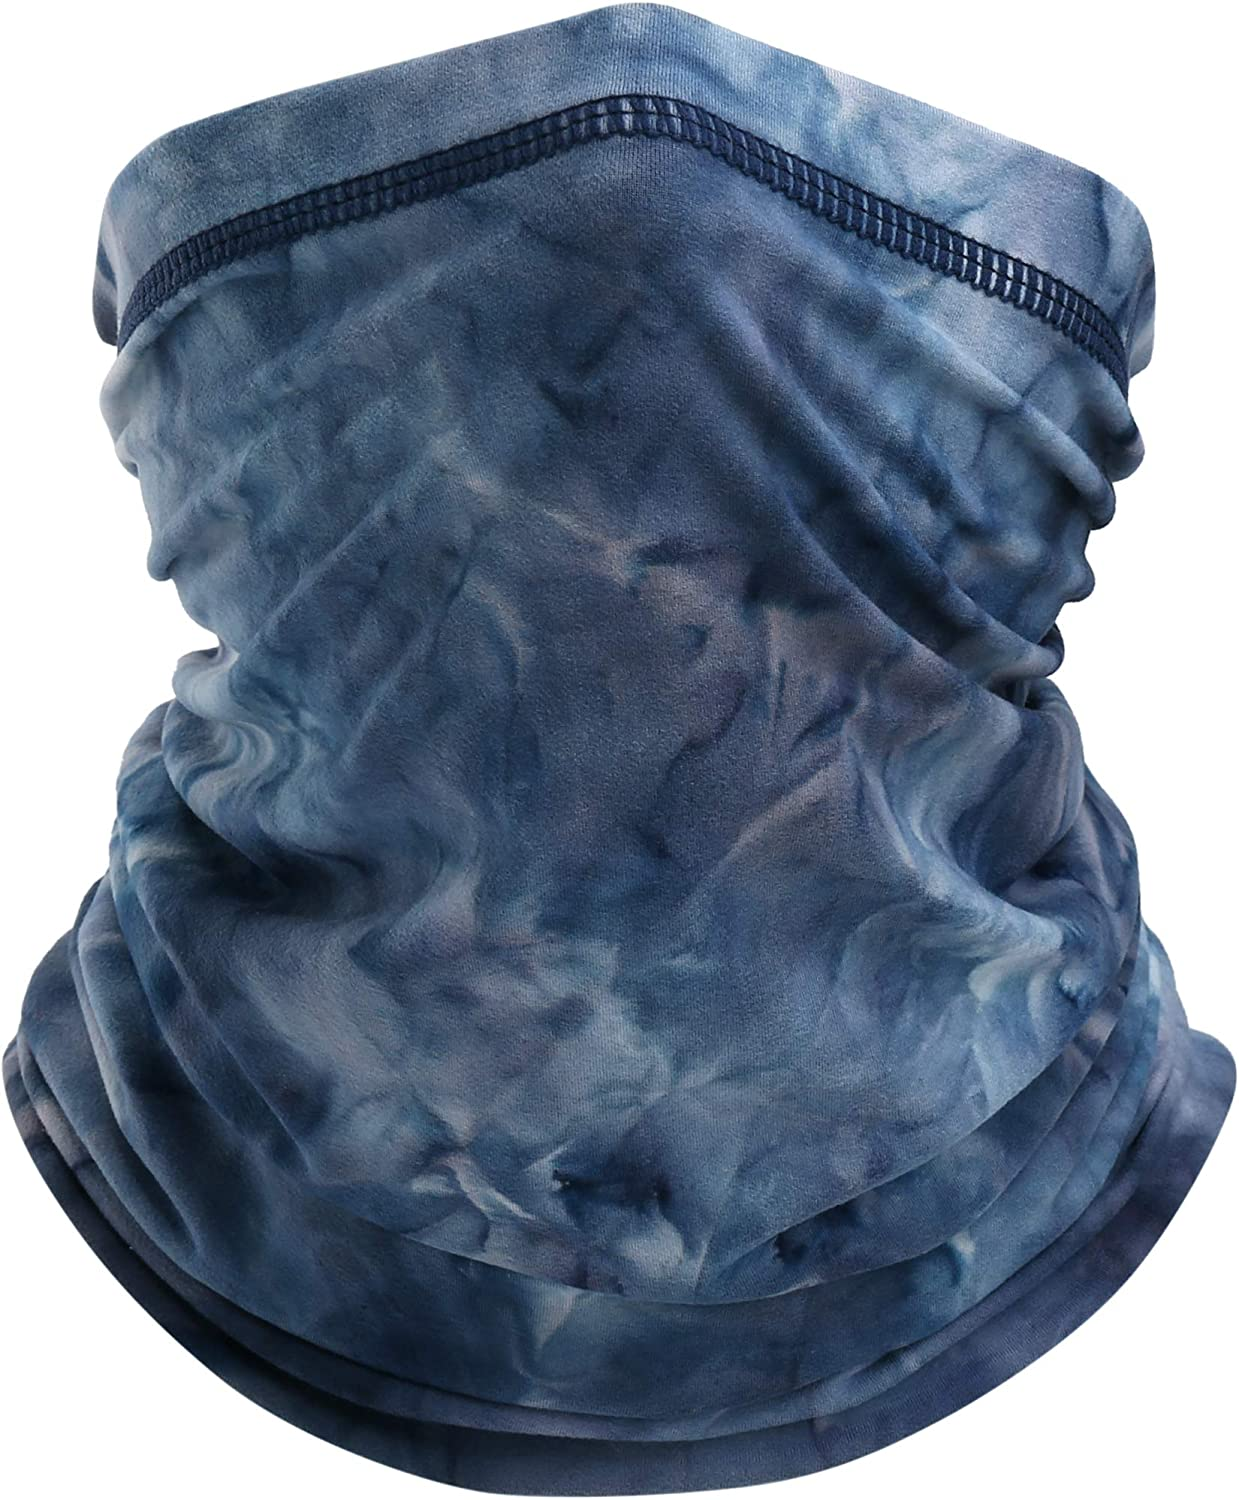 AXBXCX Windproof Ski Mask - Cold Weather Neck Warmer Gaiter for Winter